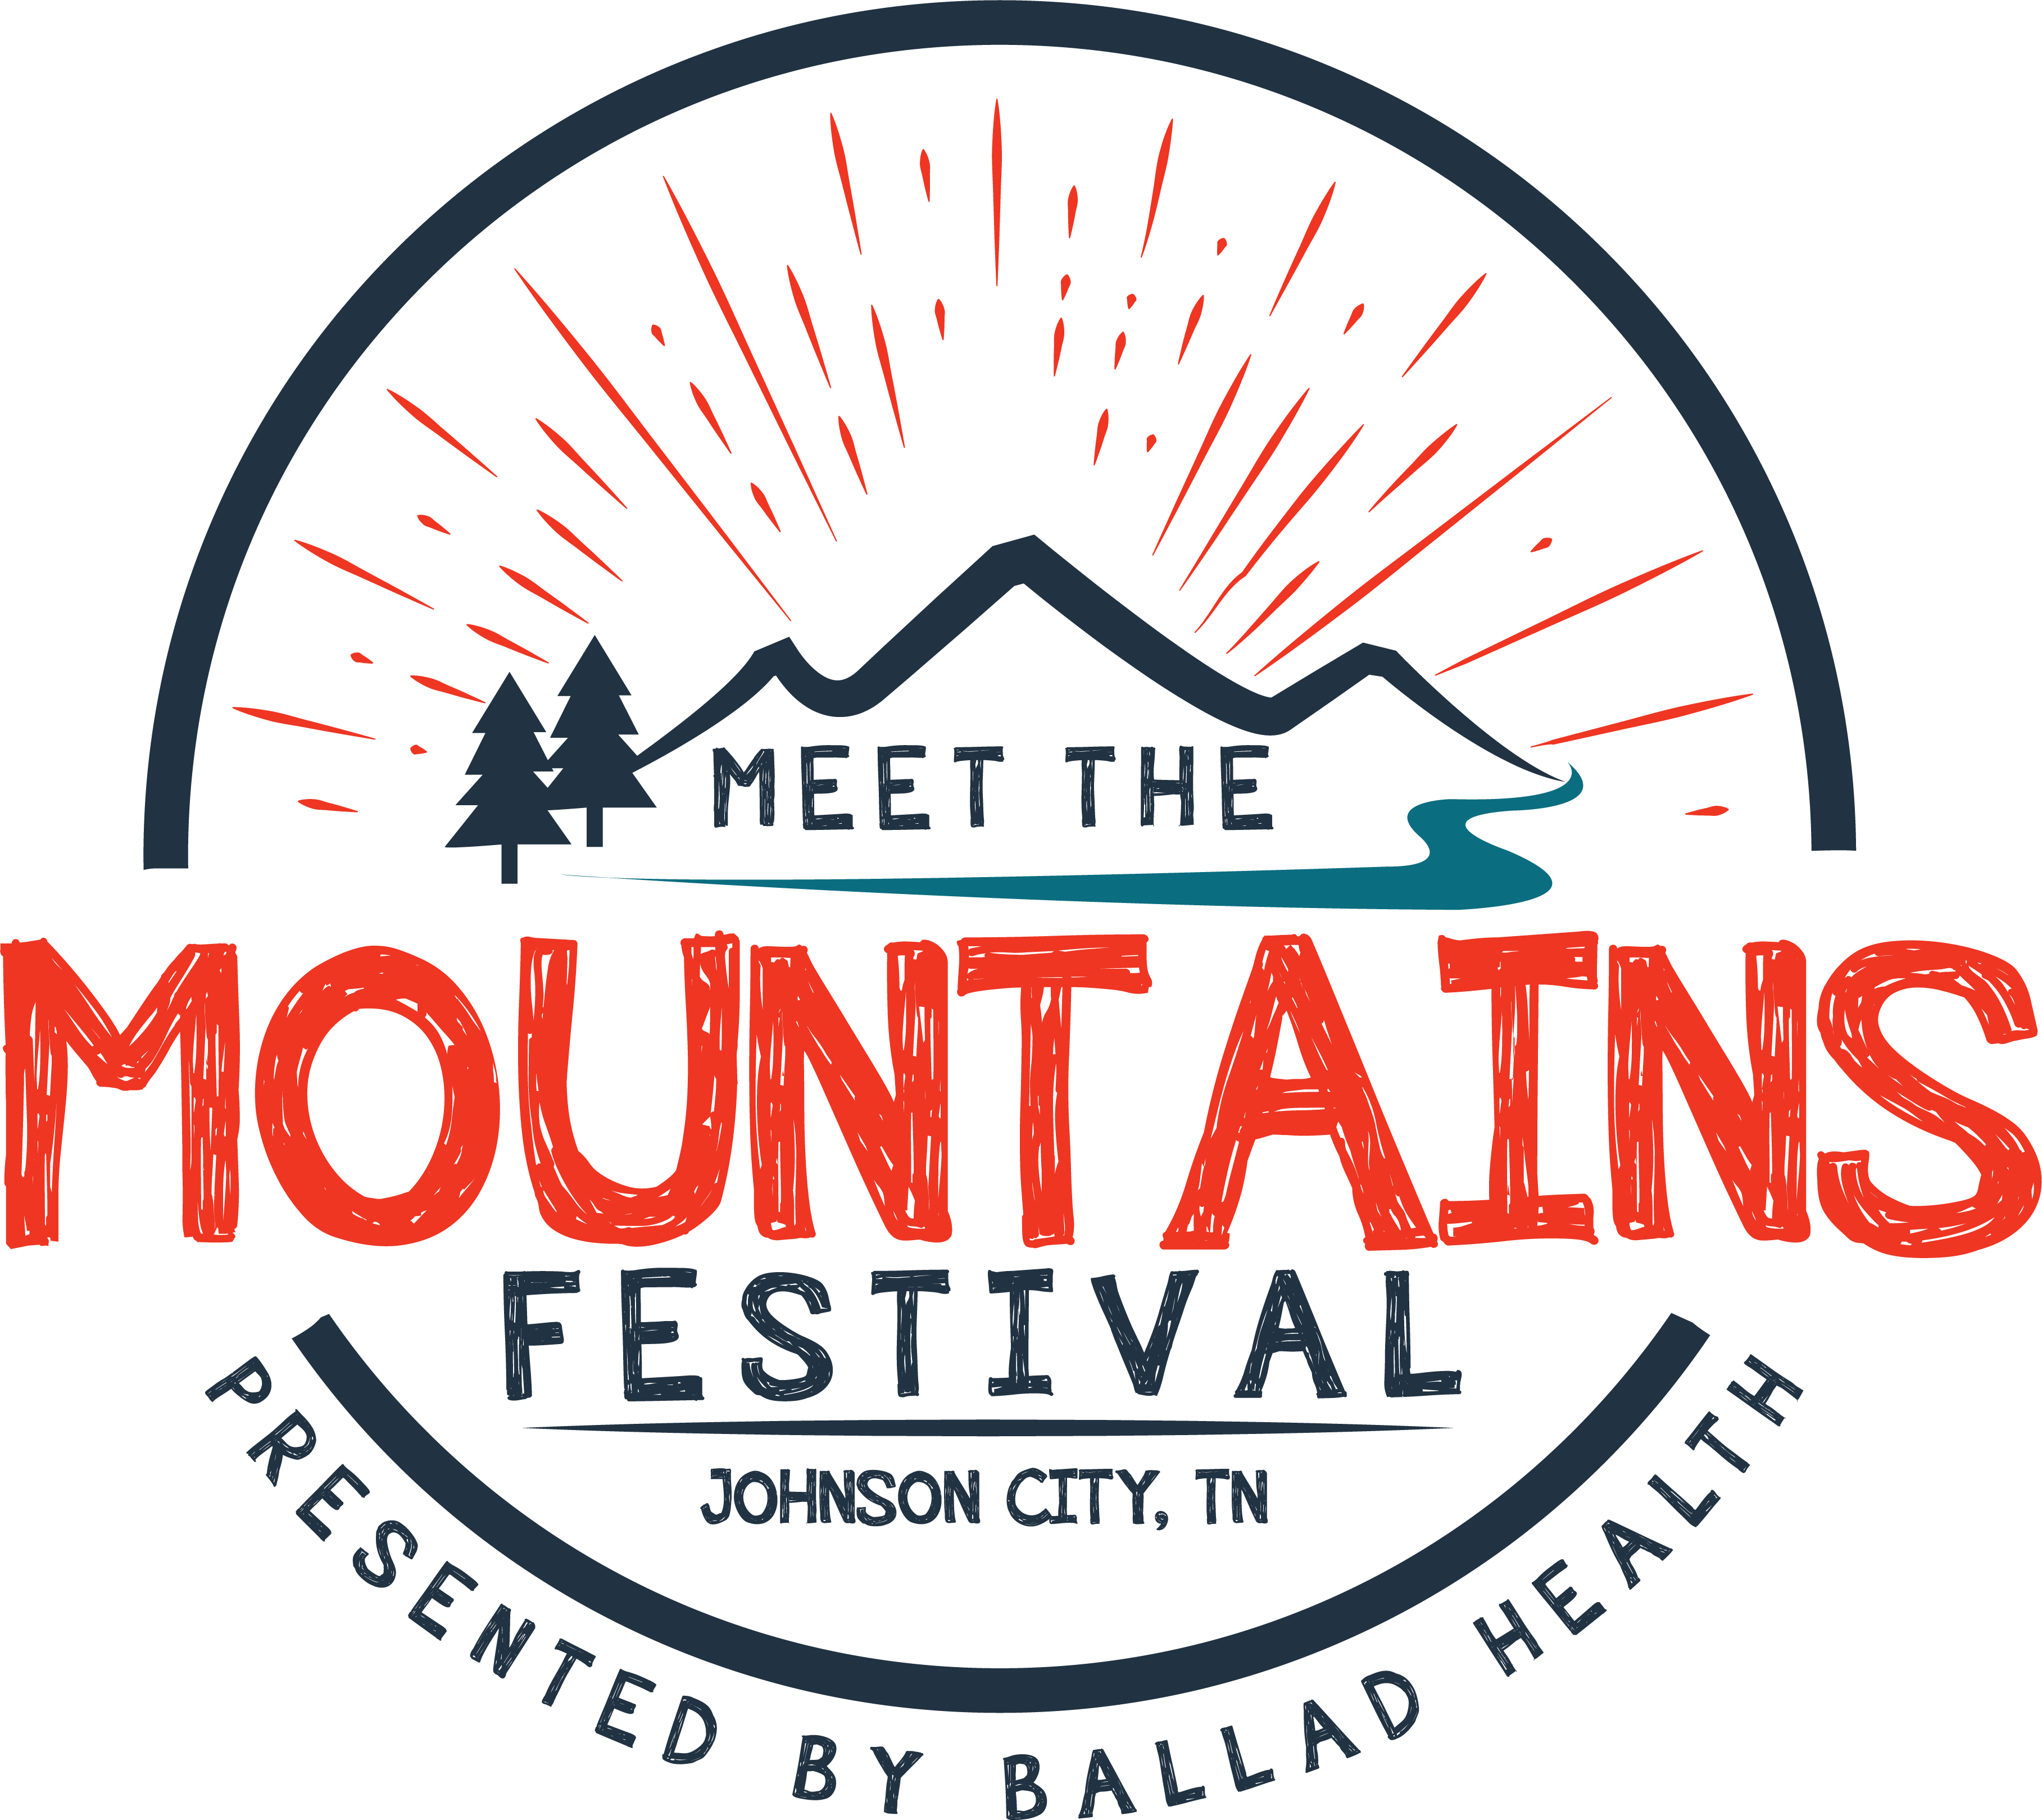 Meet The Mountains Festival